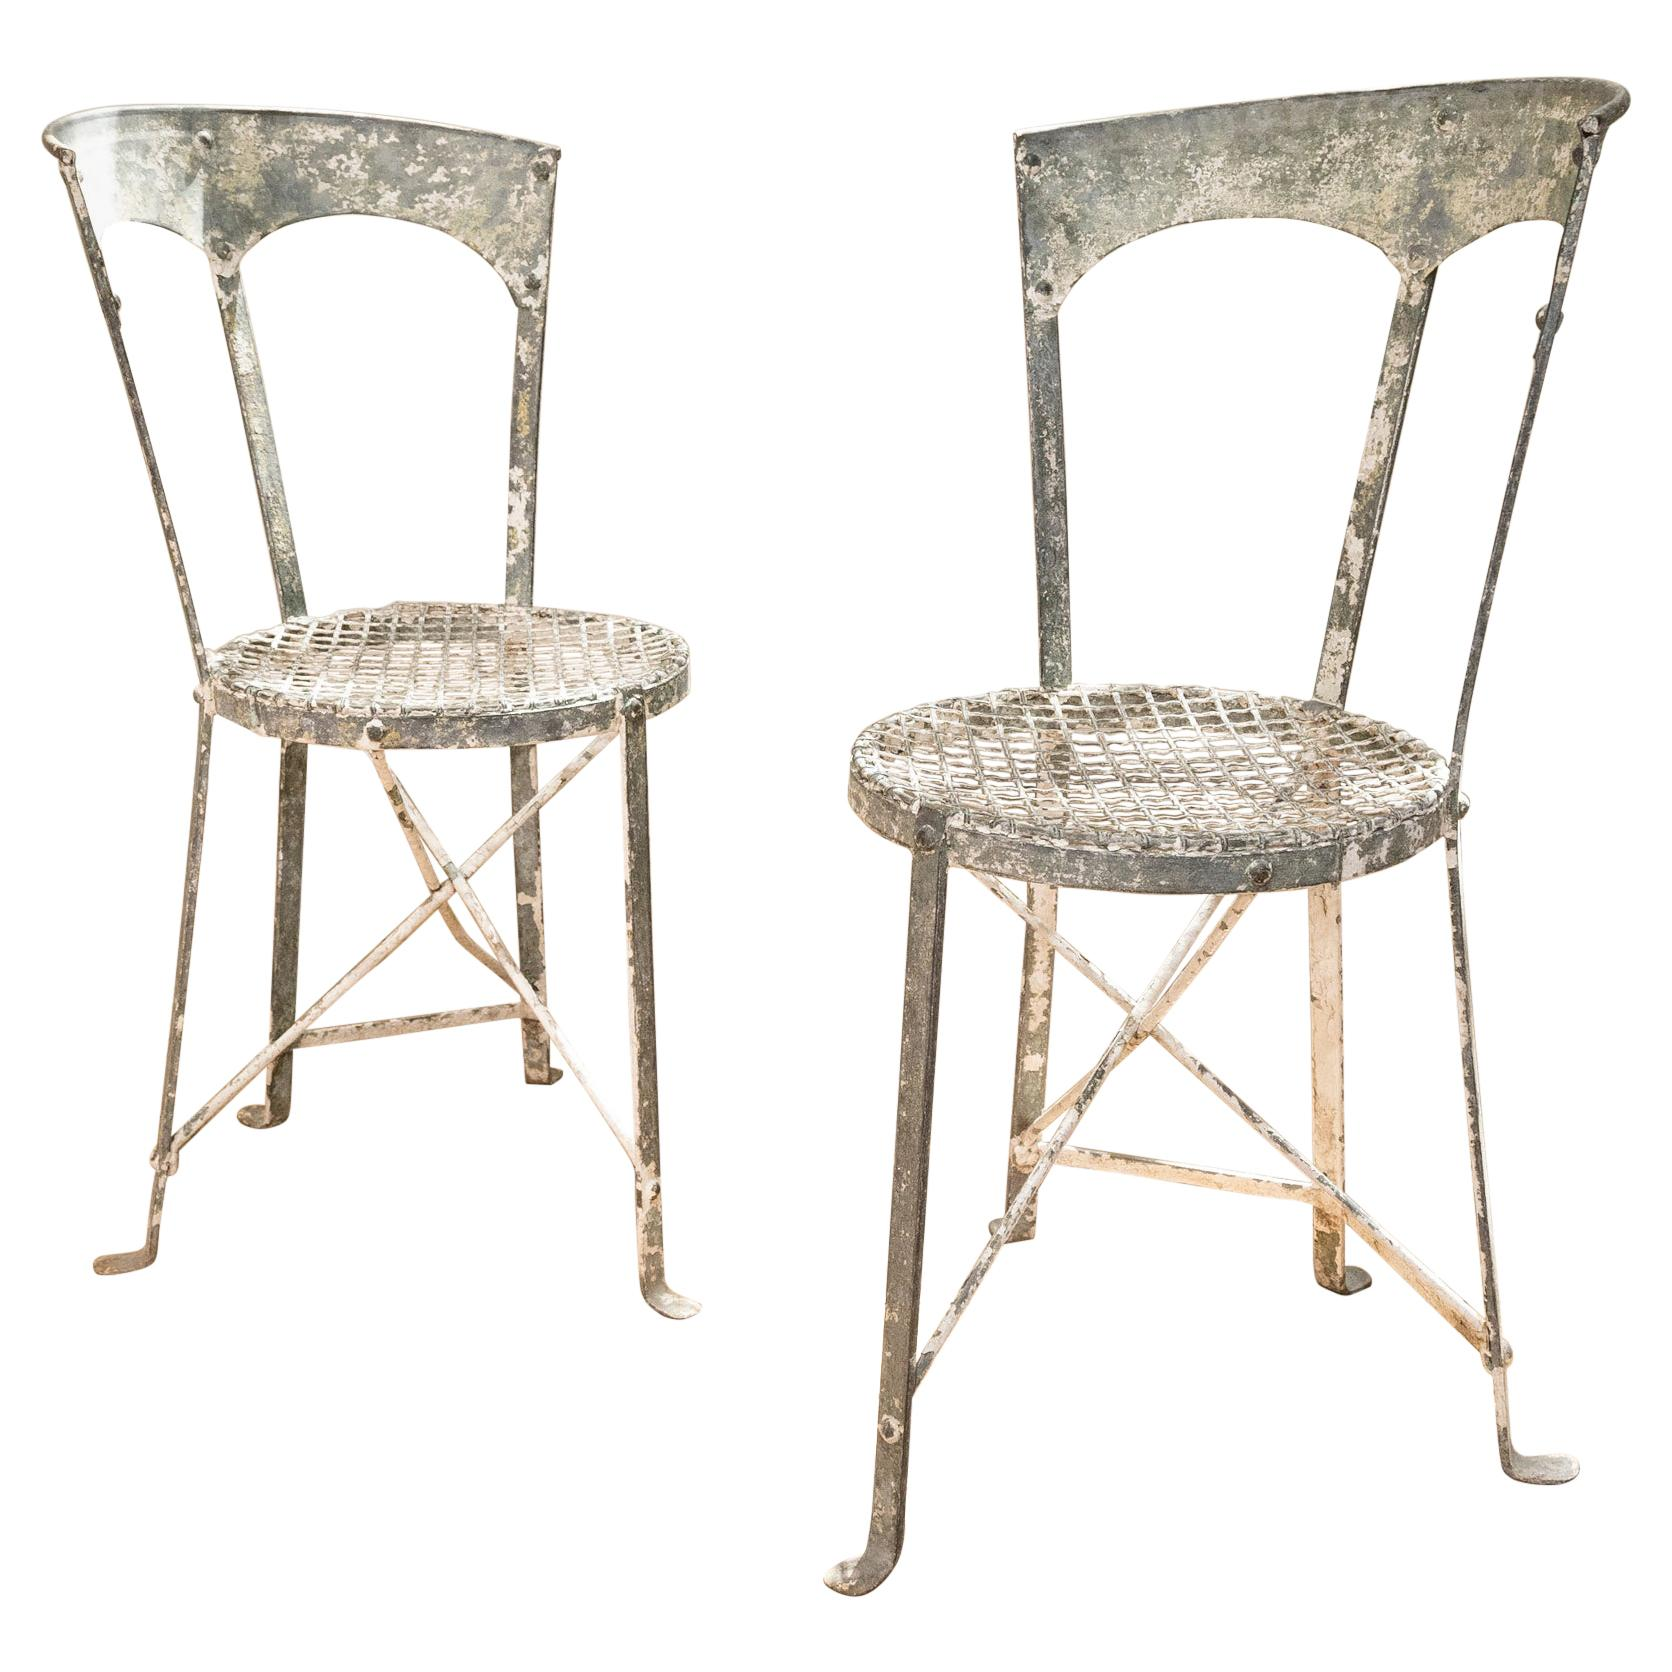 Charming Pair of Small French Metal Garden Chairs